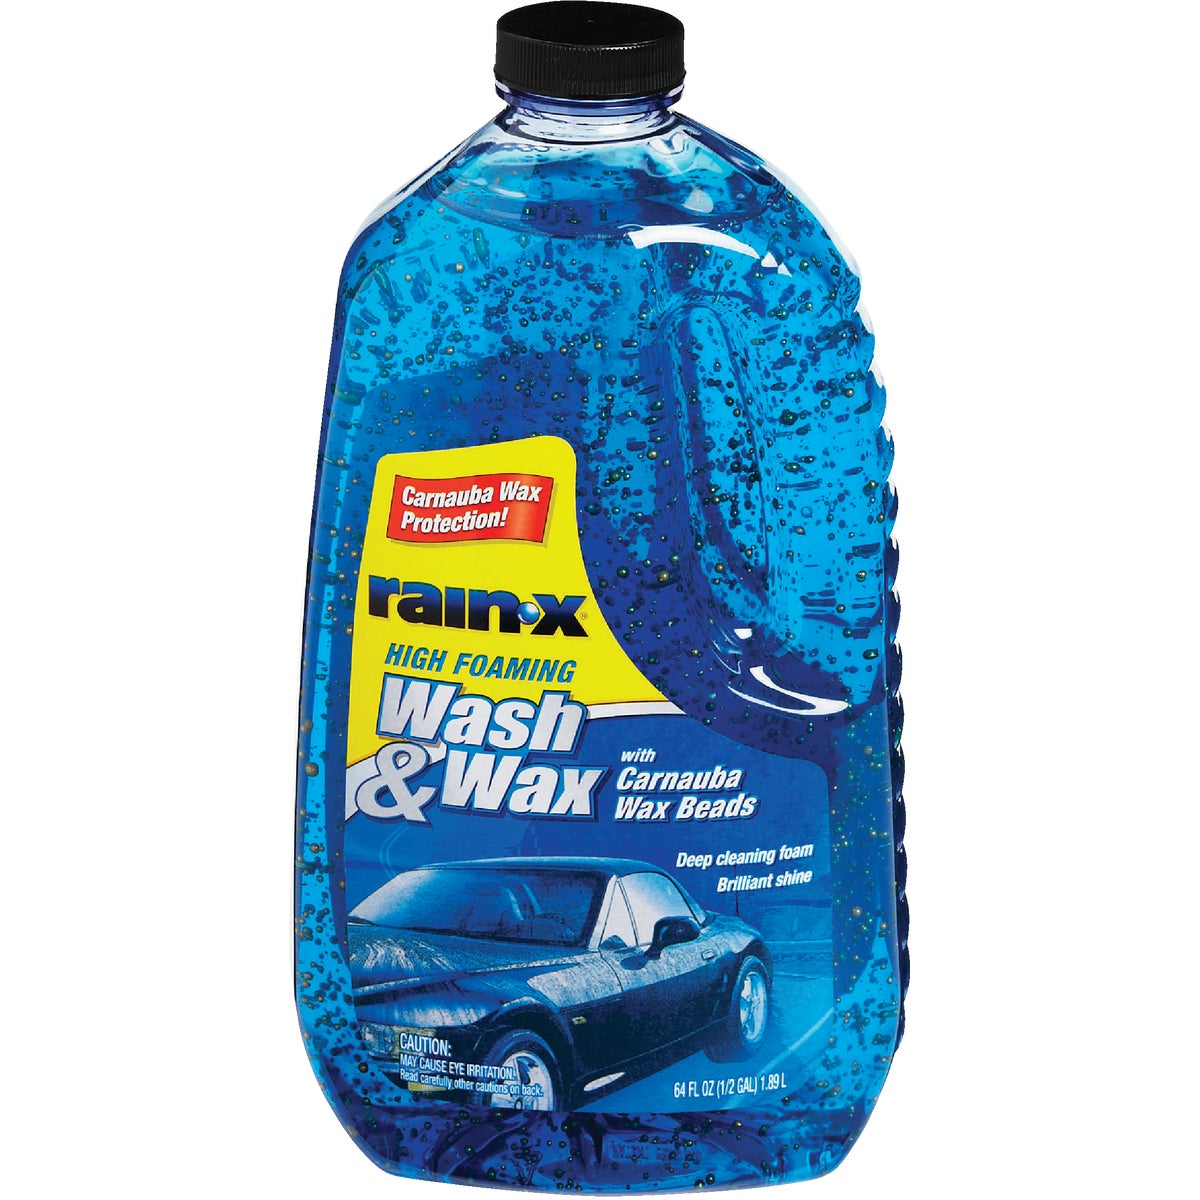 64OZ WASH & WAX CAR WASH - 5077557 by Itw Global Brands